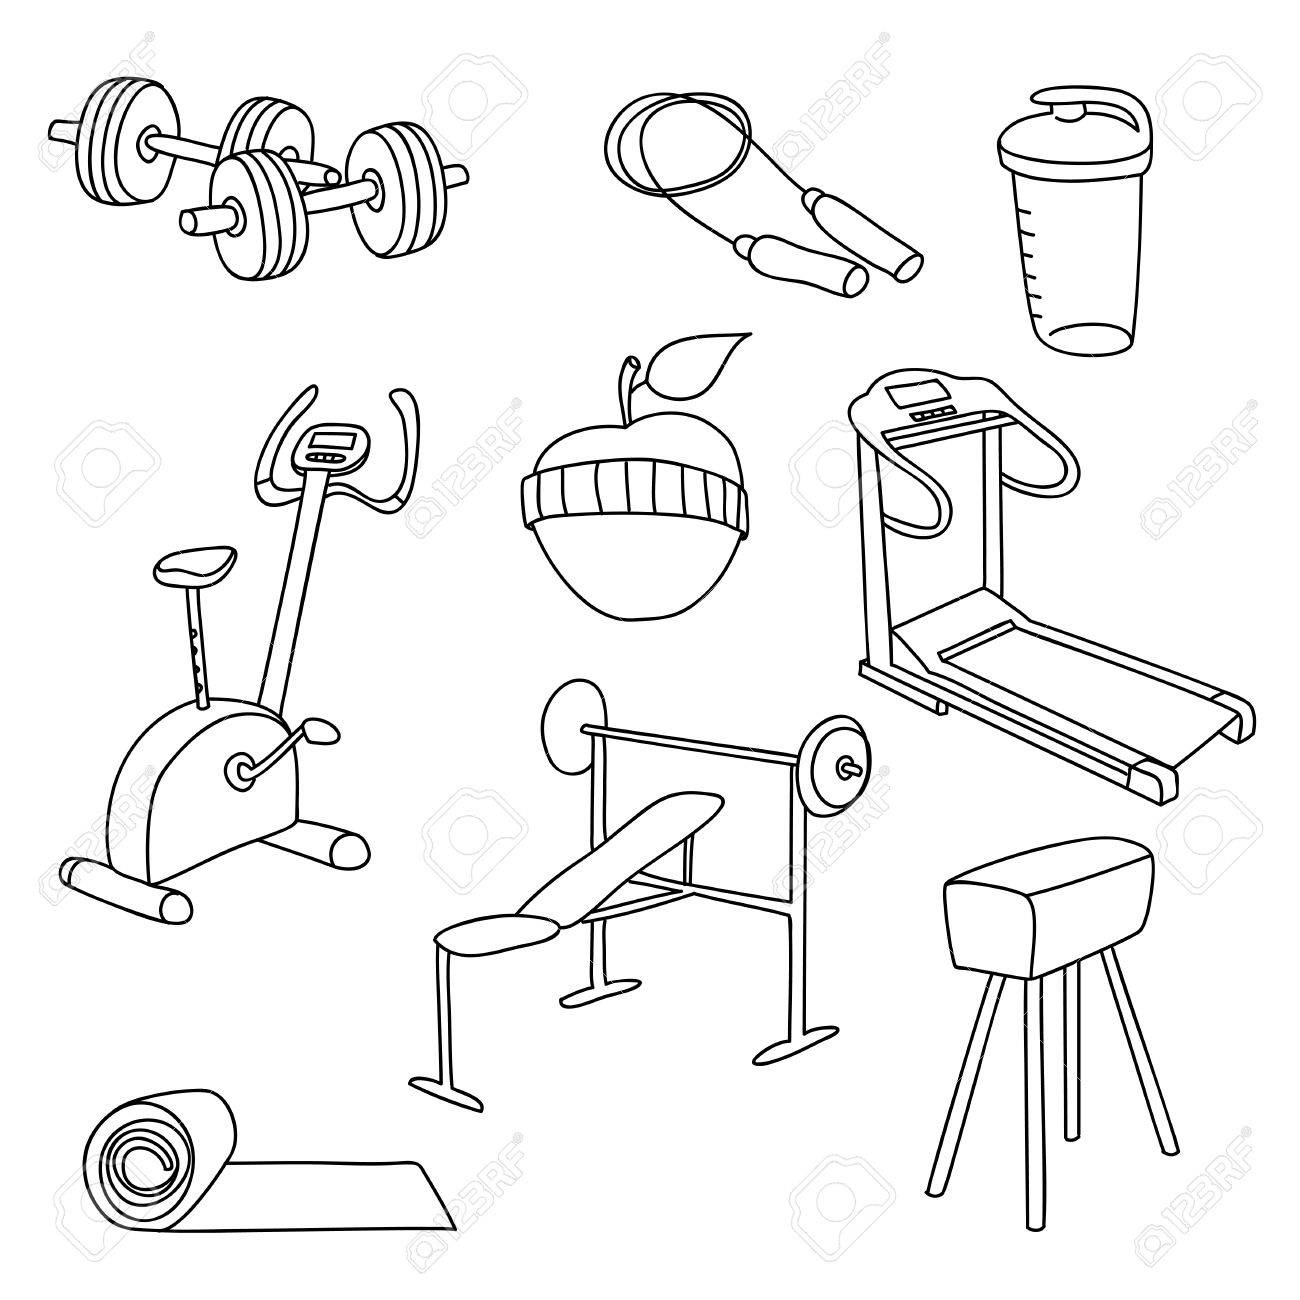 Fitness Drawing At Getdrawings